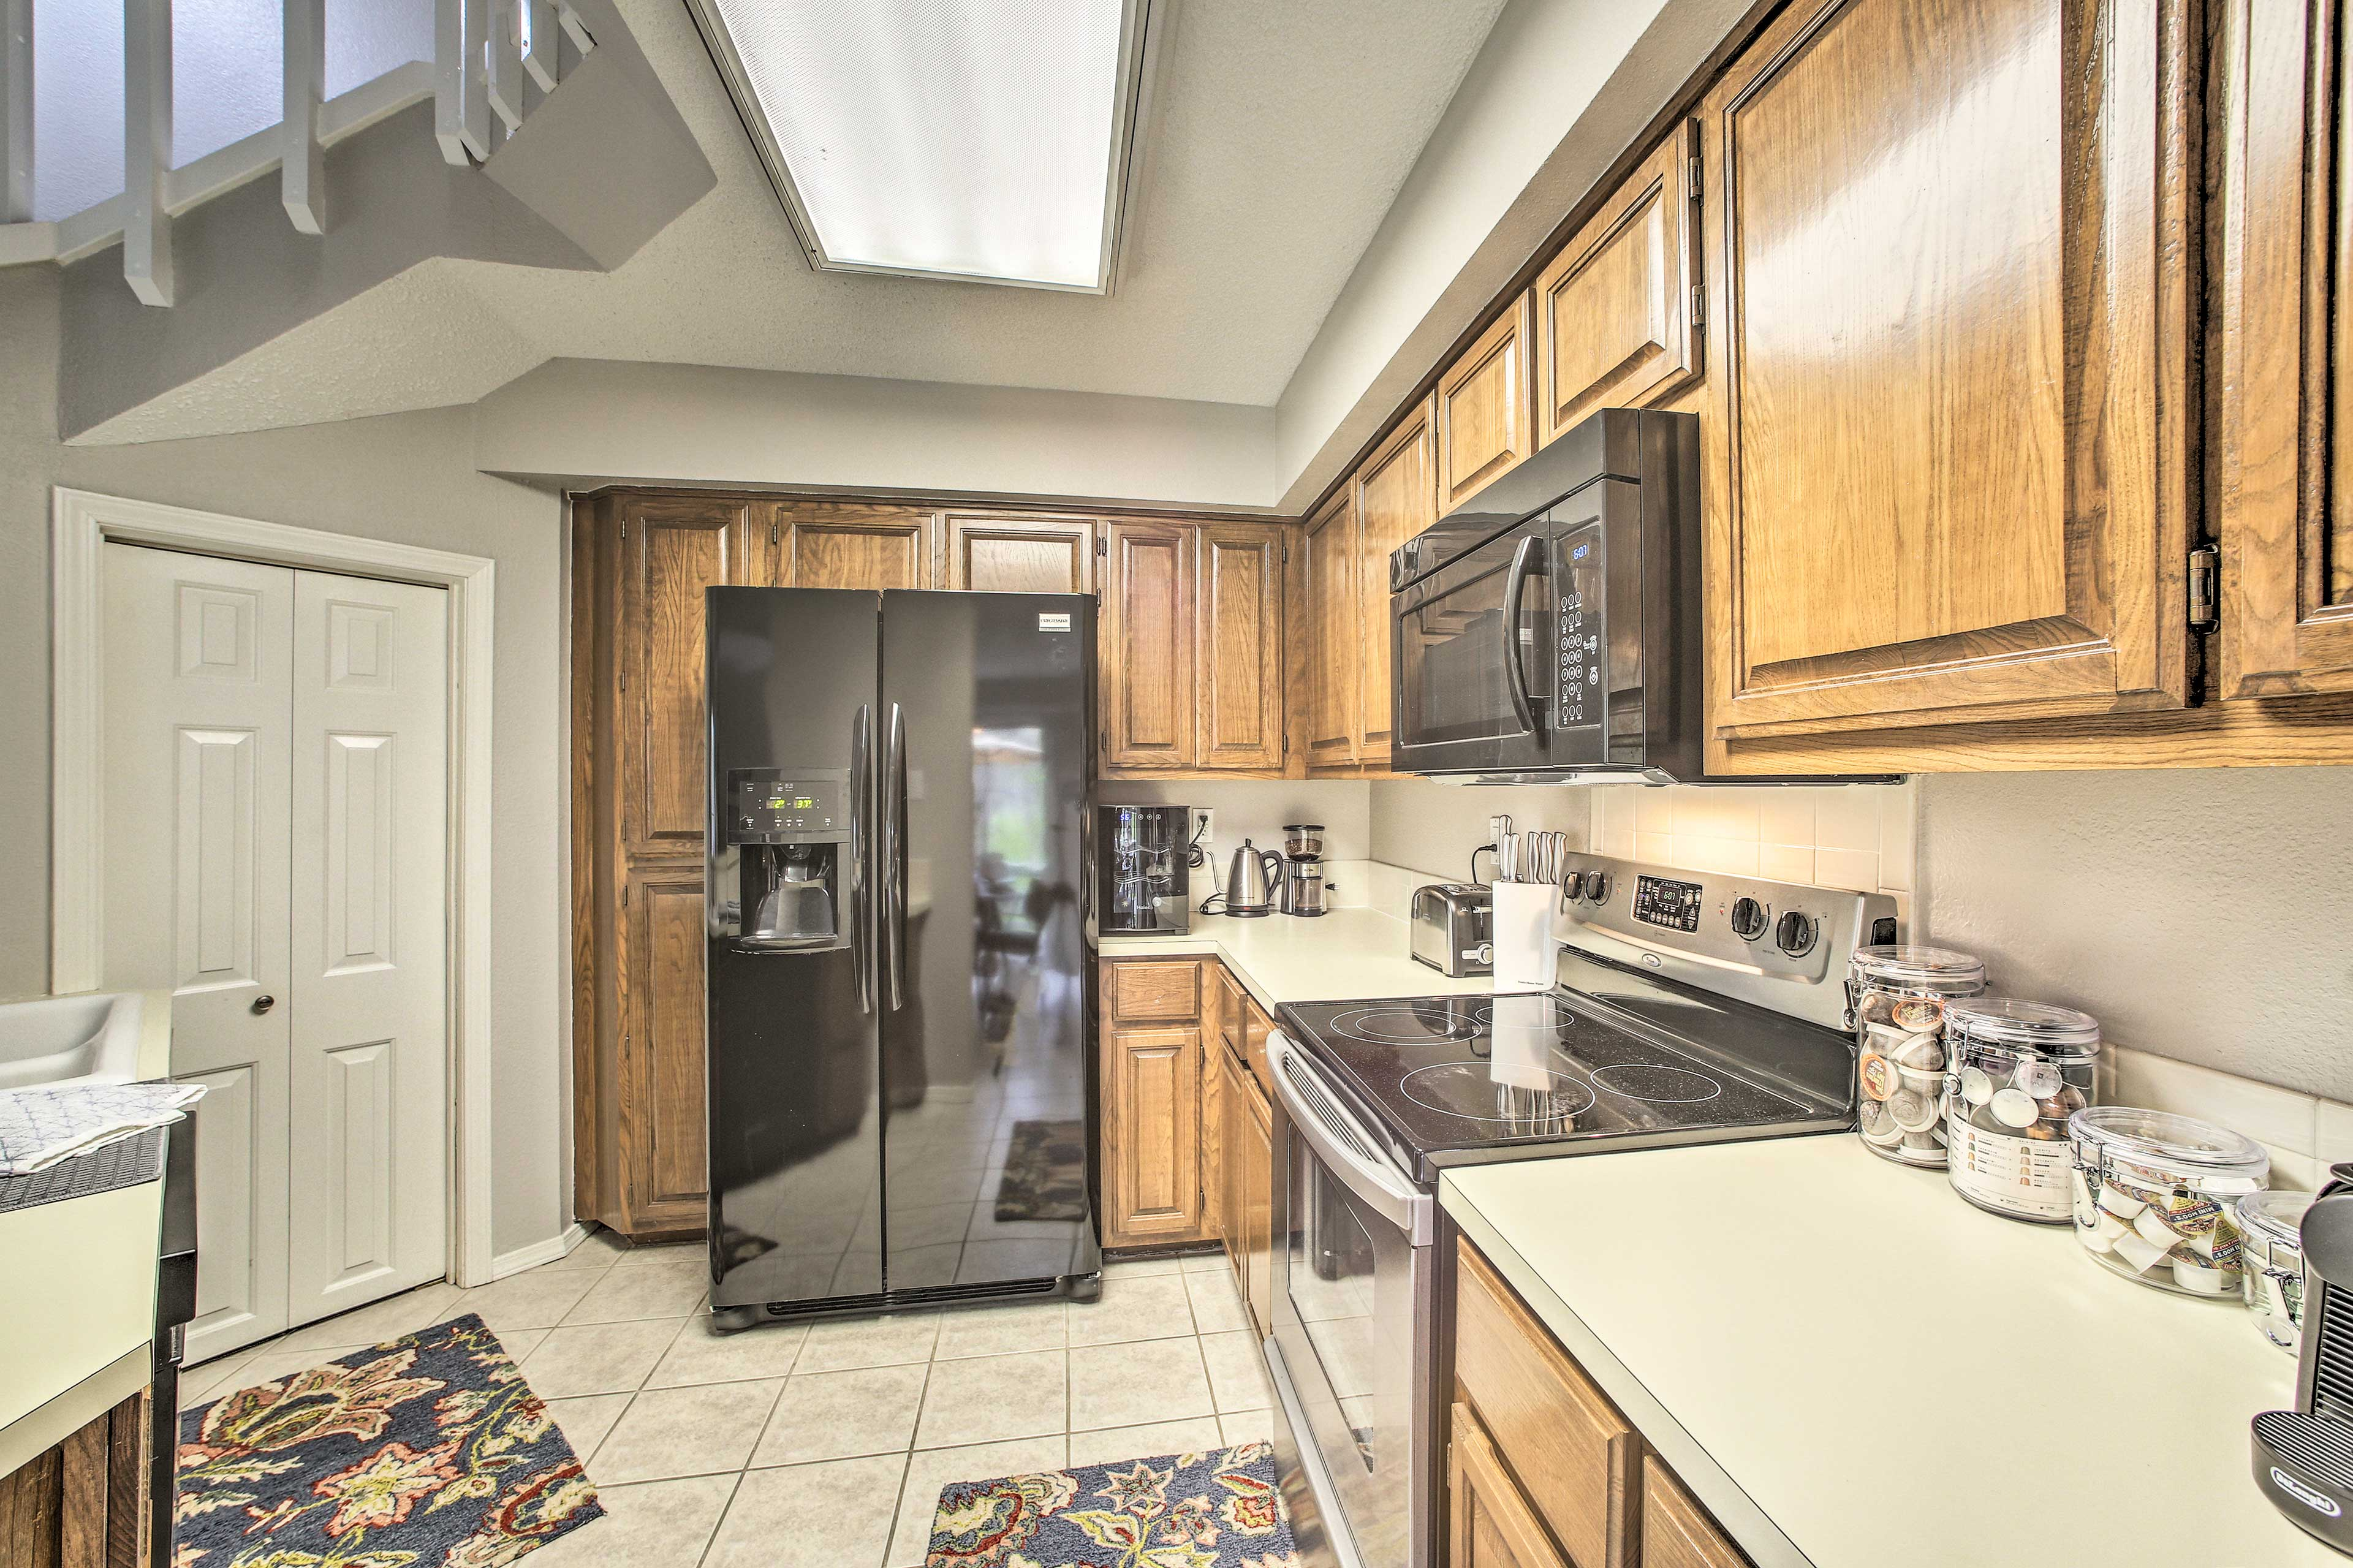 The kitchen comes fully equipped to handle all of your home-cooking needs.